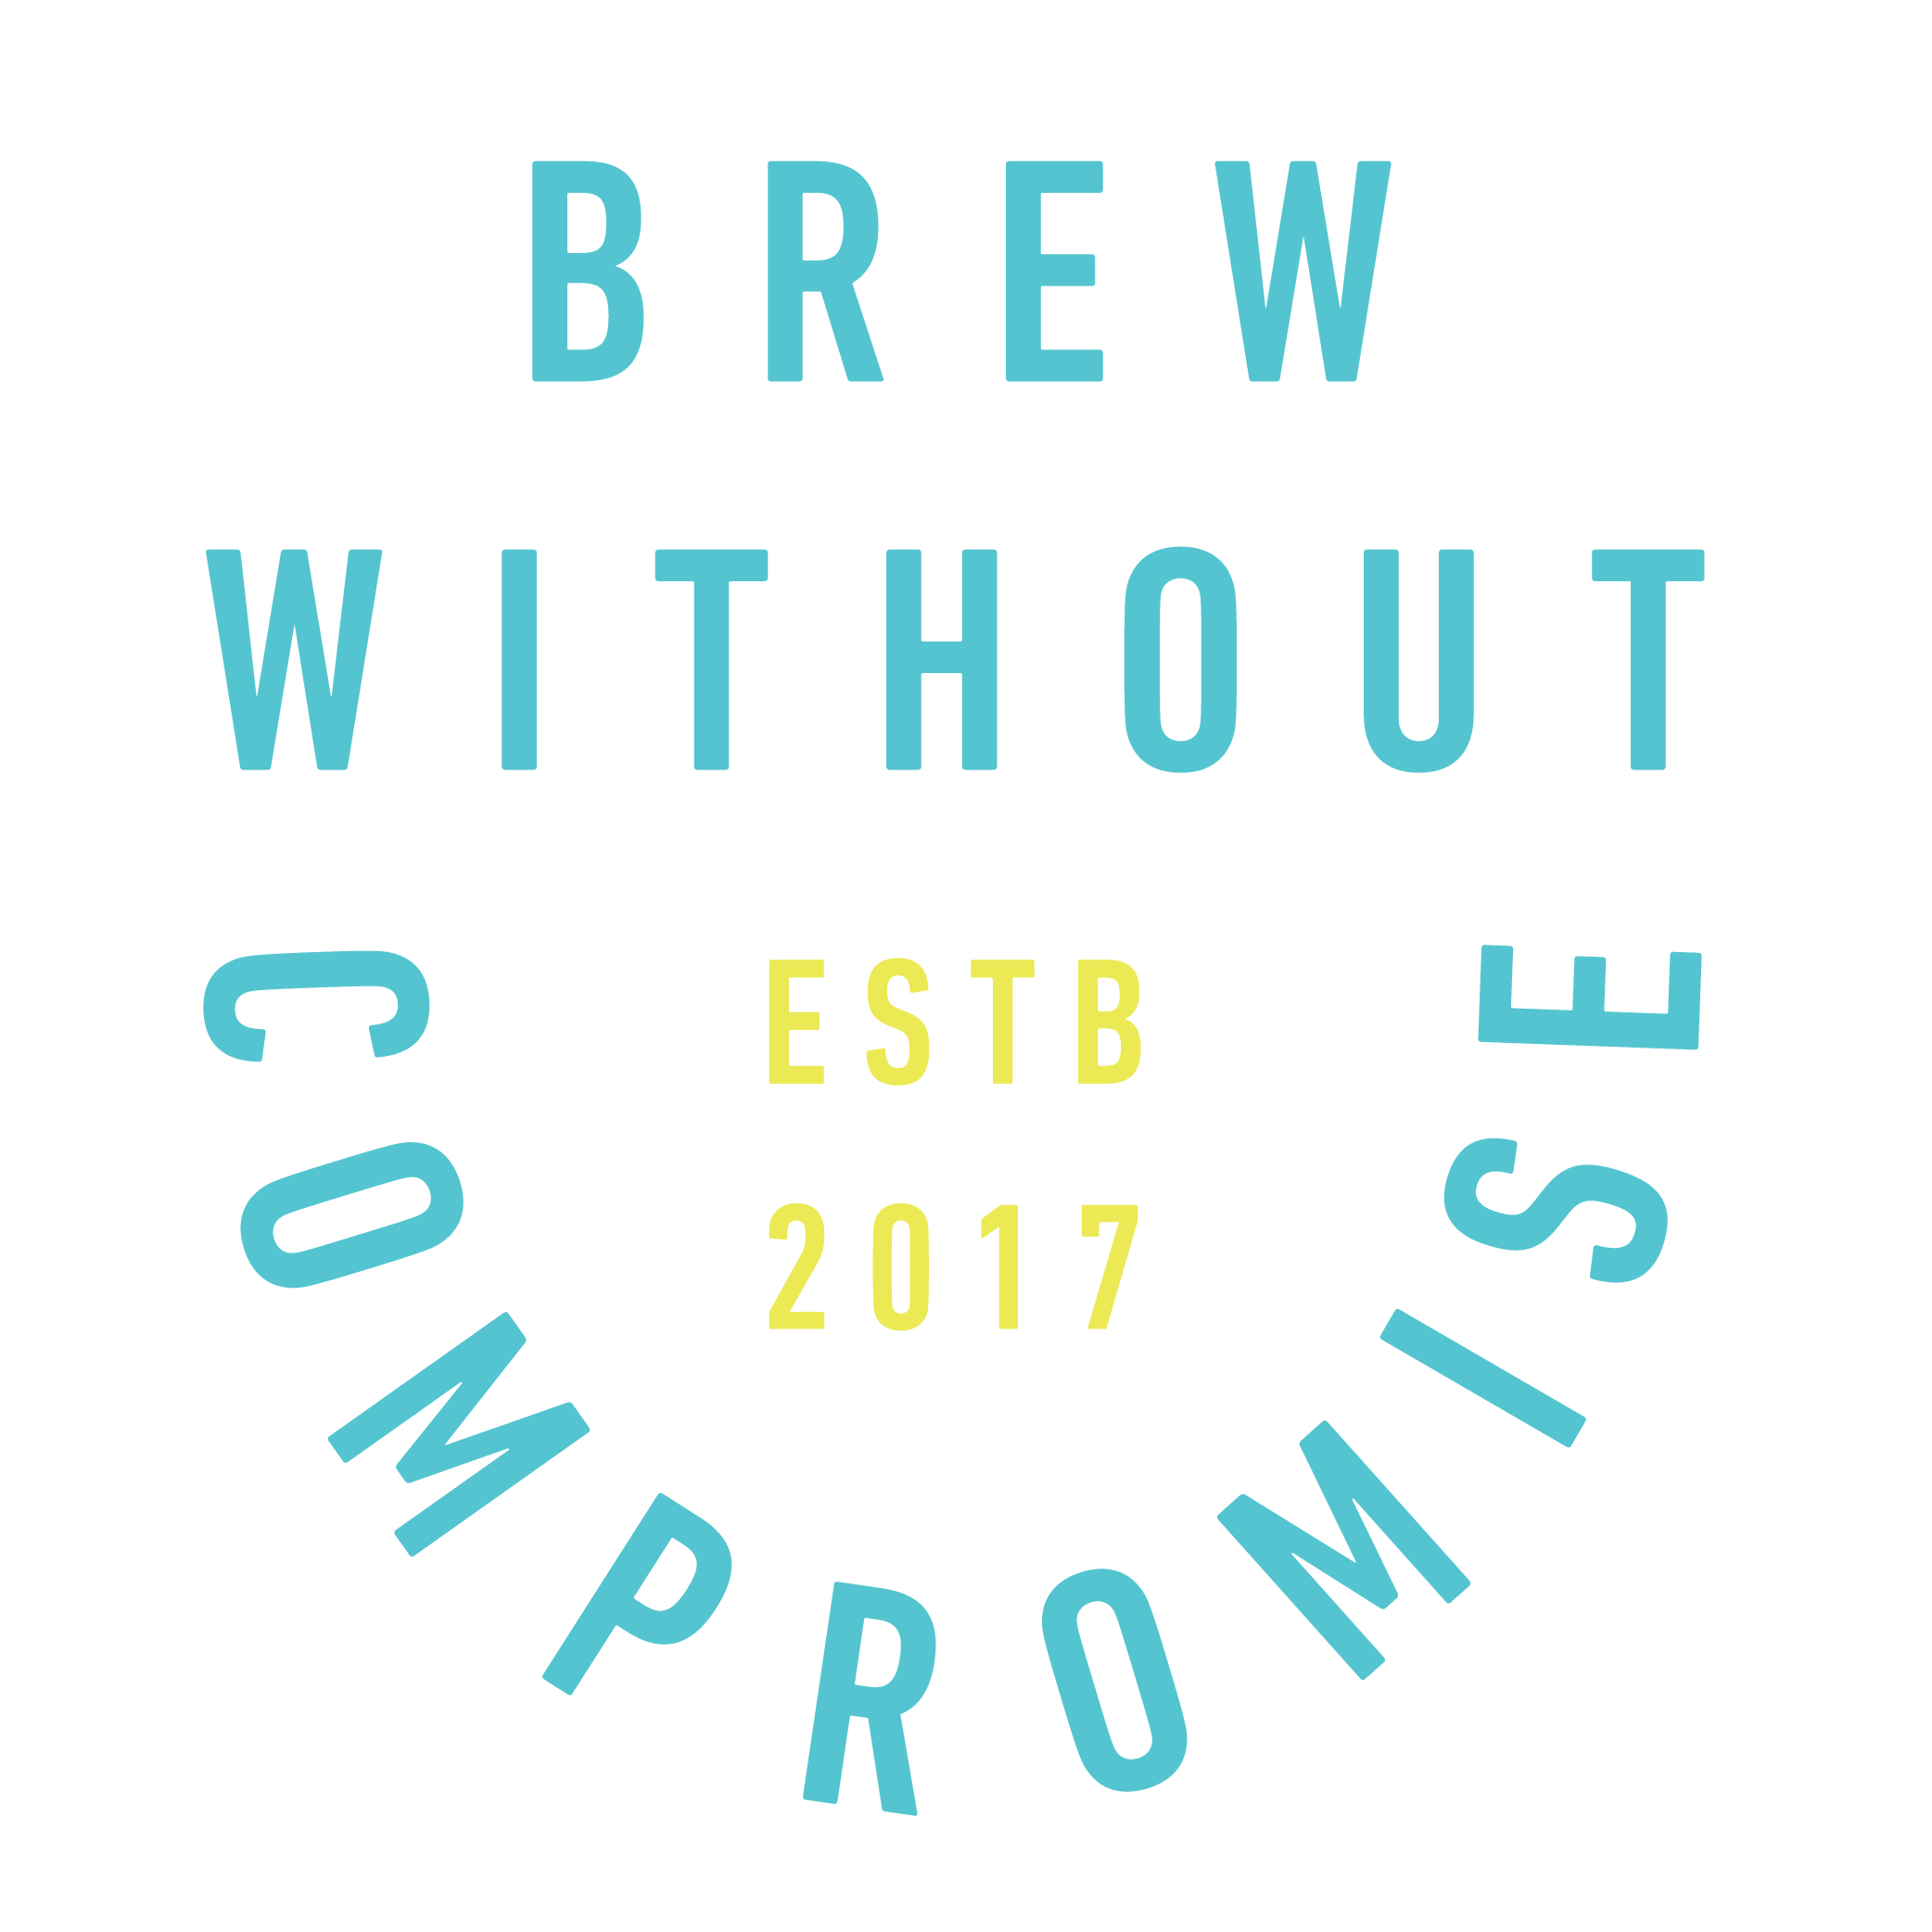 Brew_Without_Compromise-non-alcoholic-beer.png